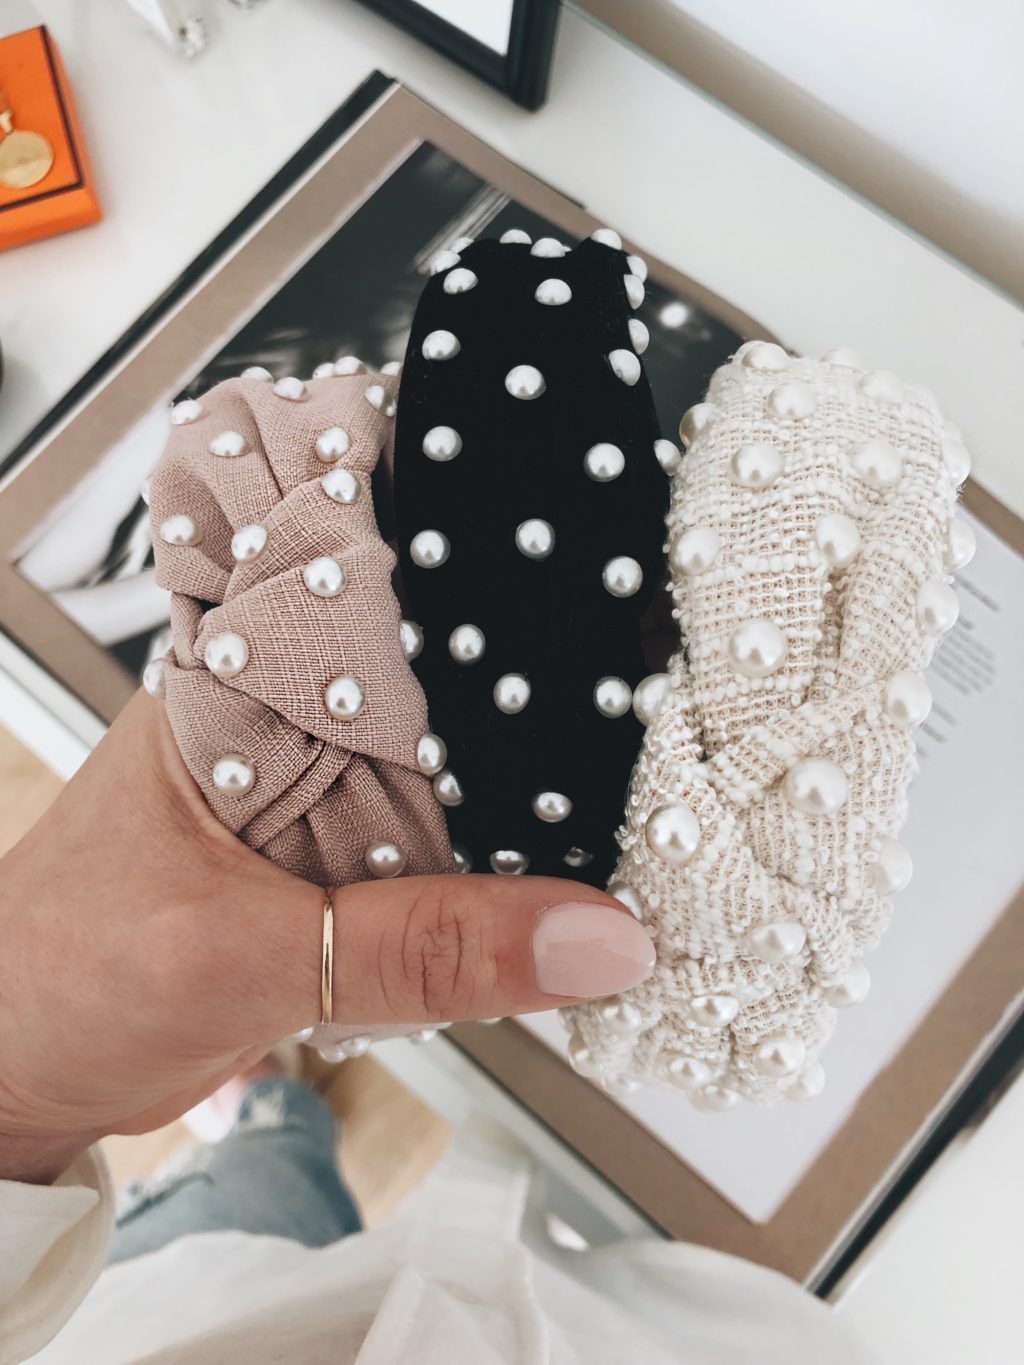 The Pearl Headband Trend (And They Are Under $40) | The Teacher Diva: a Dallas Fashion Blog featuring Beauty & Lifestyle